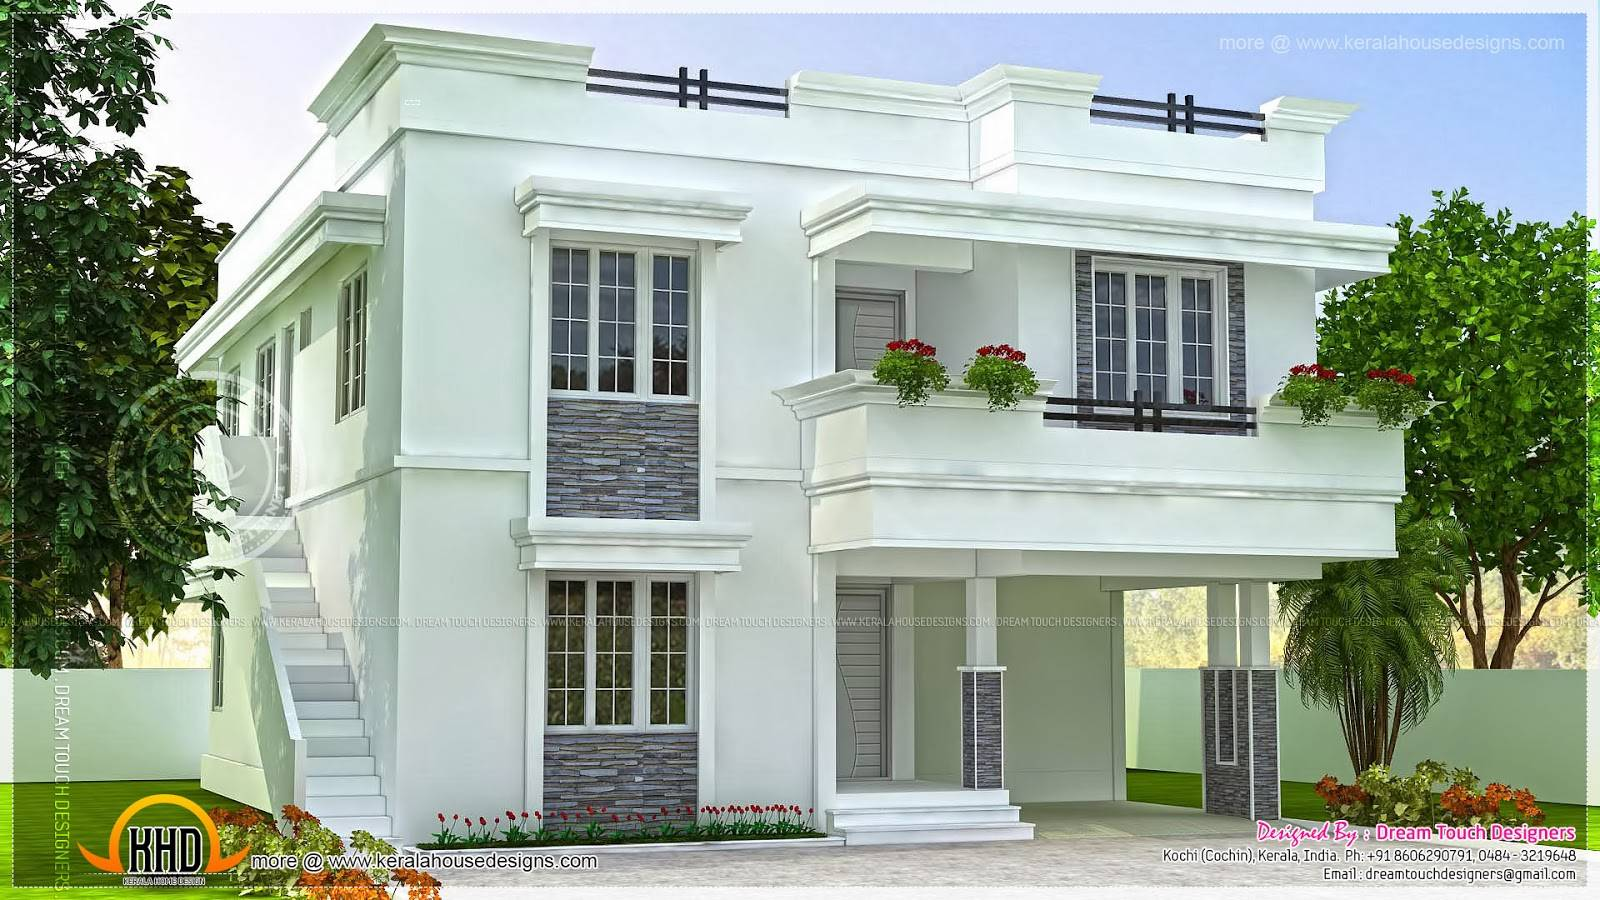 Modern Duplex House Plans Designs Exterior Home Design House Plans 42933